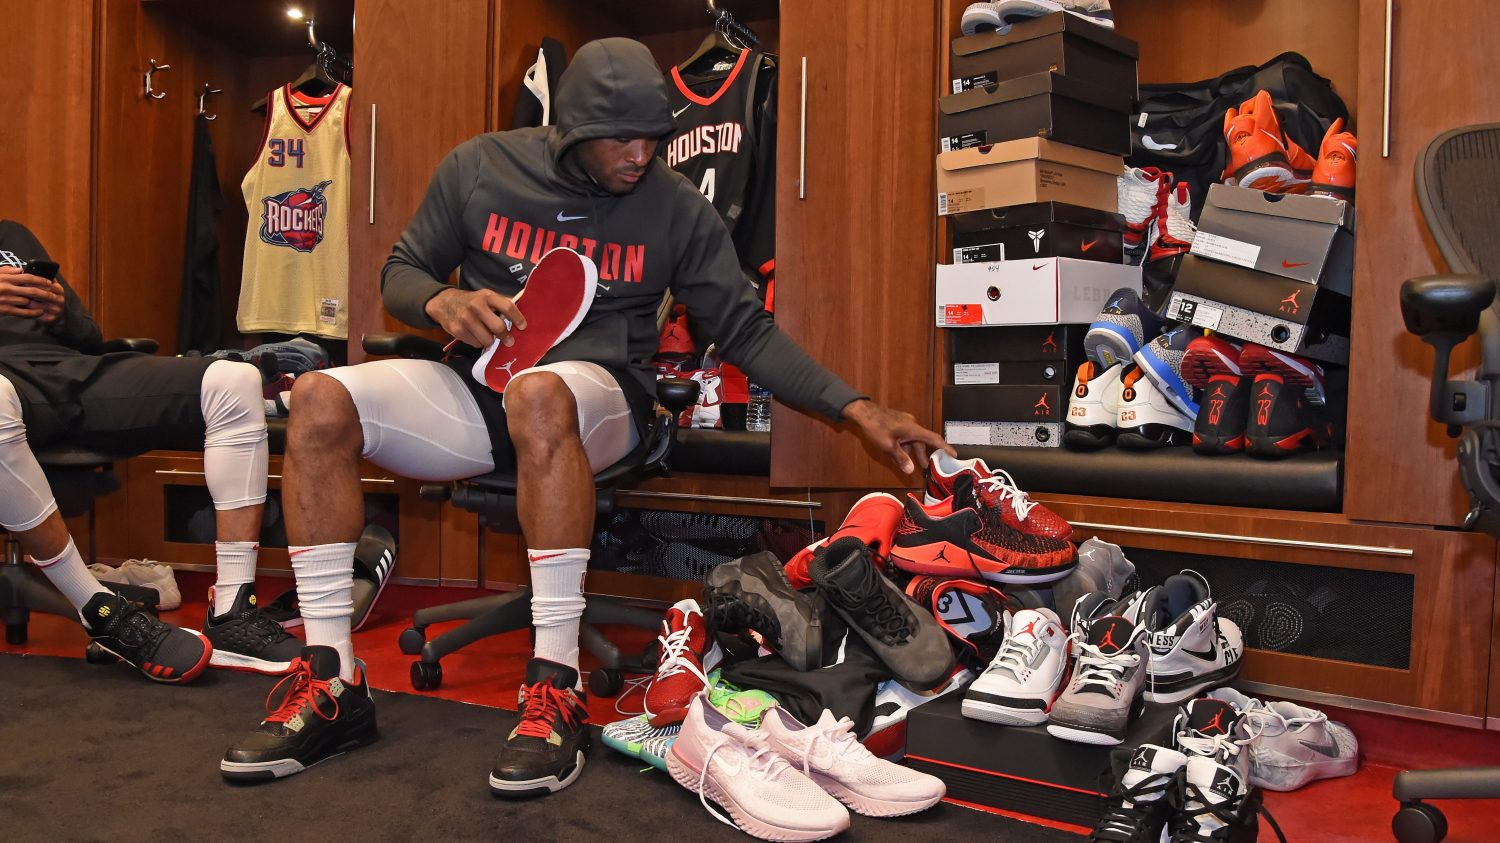 dac5103096 The complete — and insane — list of P.J. Tucker's 2018 NBA playoff sneakers